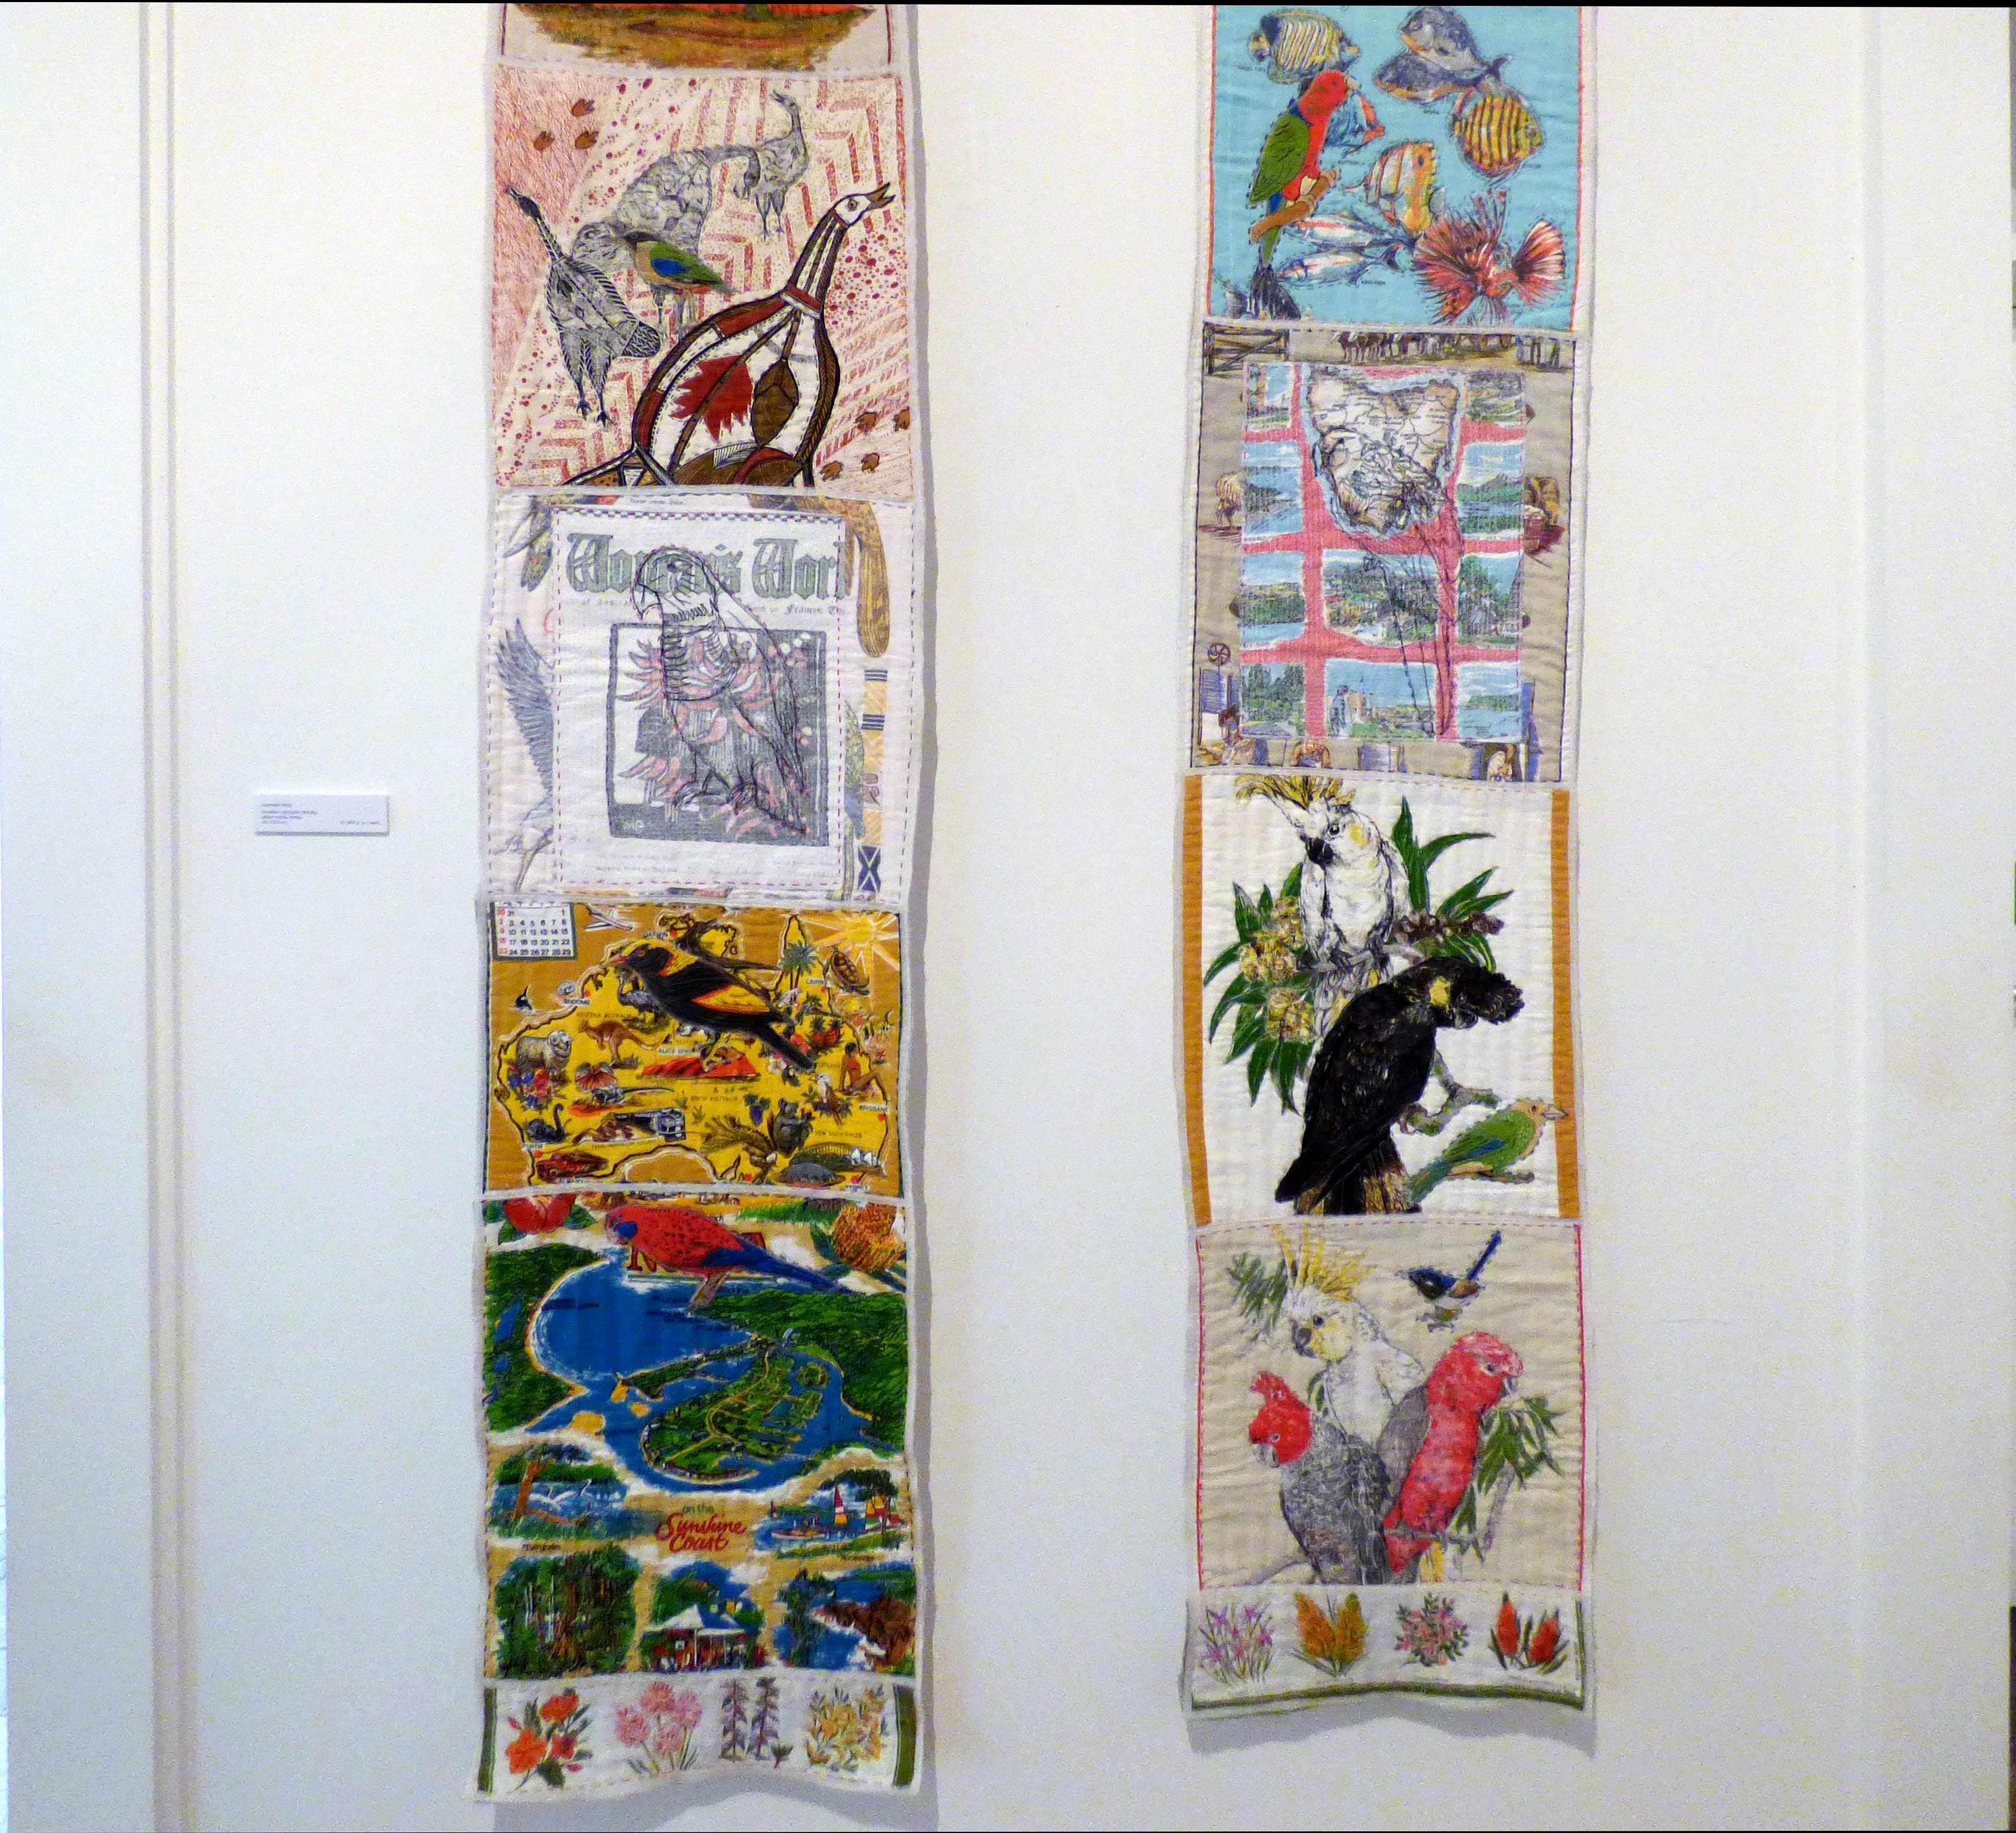 AUSTRALIAN BIRDS, mixed media textiles by Anne Kelly, Ruthin Craft Gallery, July 2021